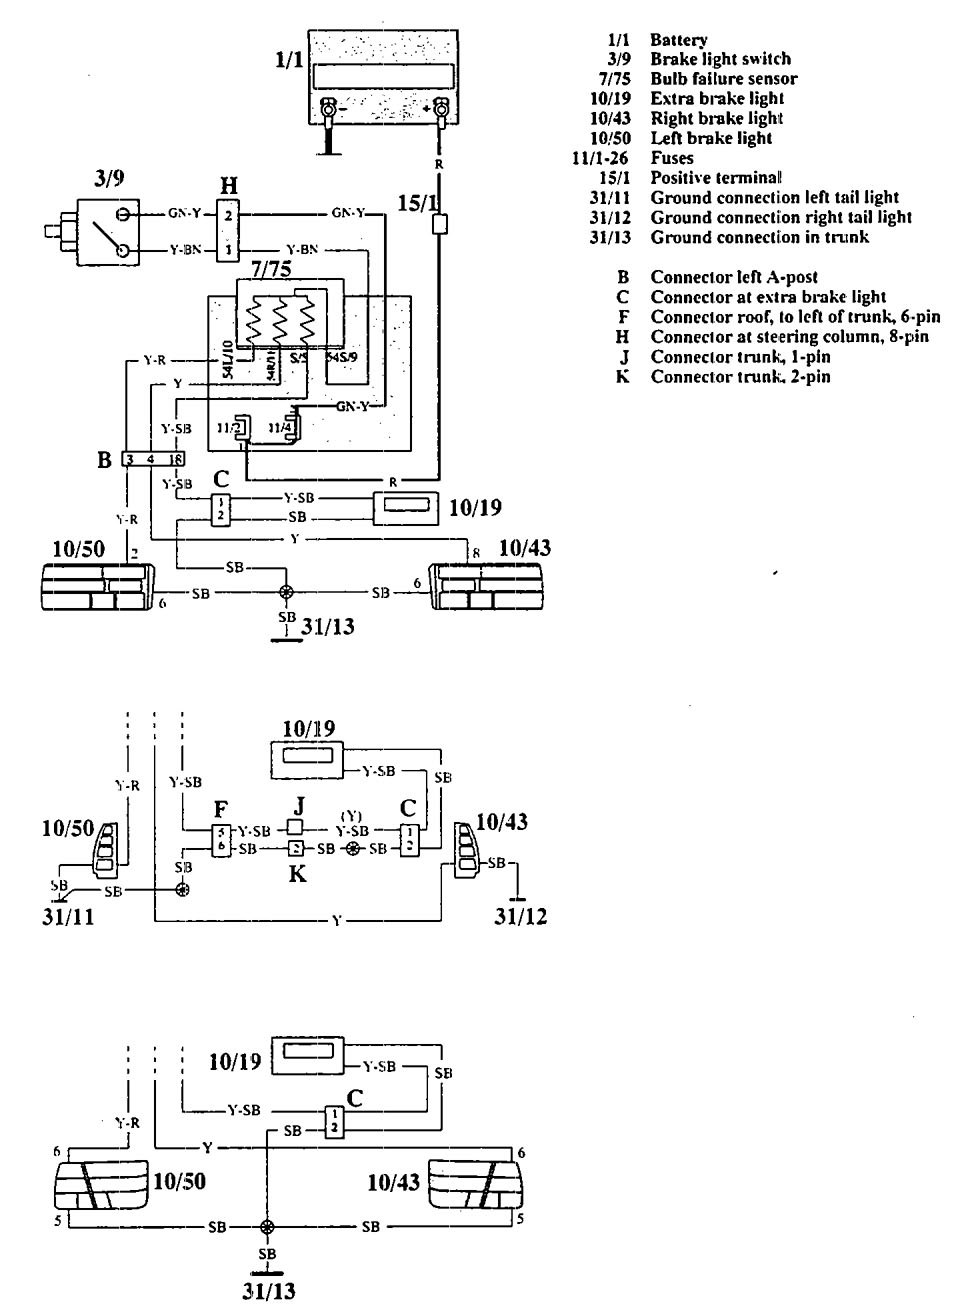 WRG-3124] 1991 Volvo 740 Stereo Wiring Diagram on